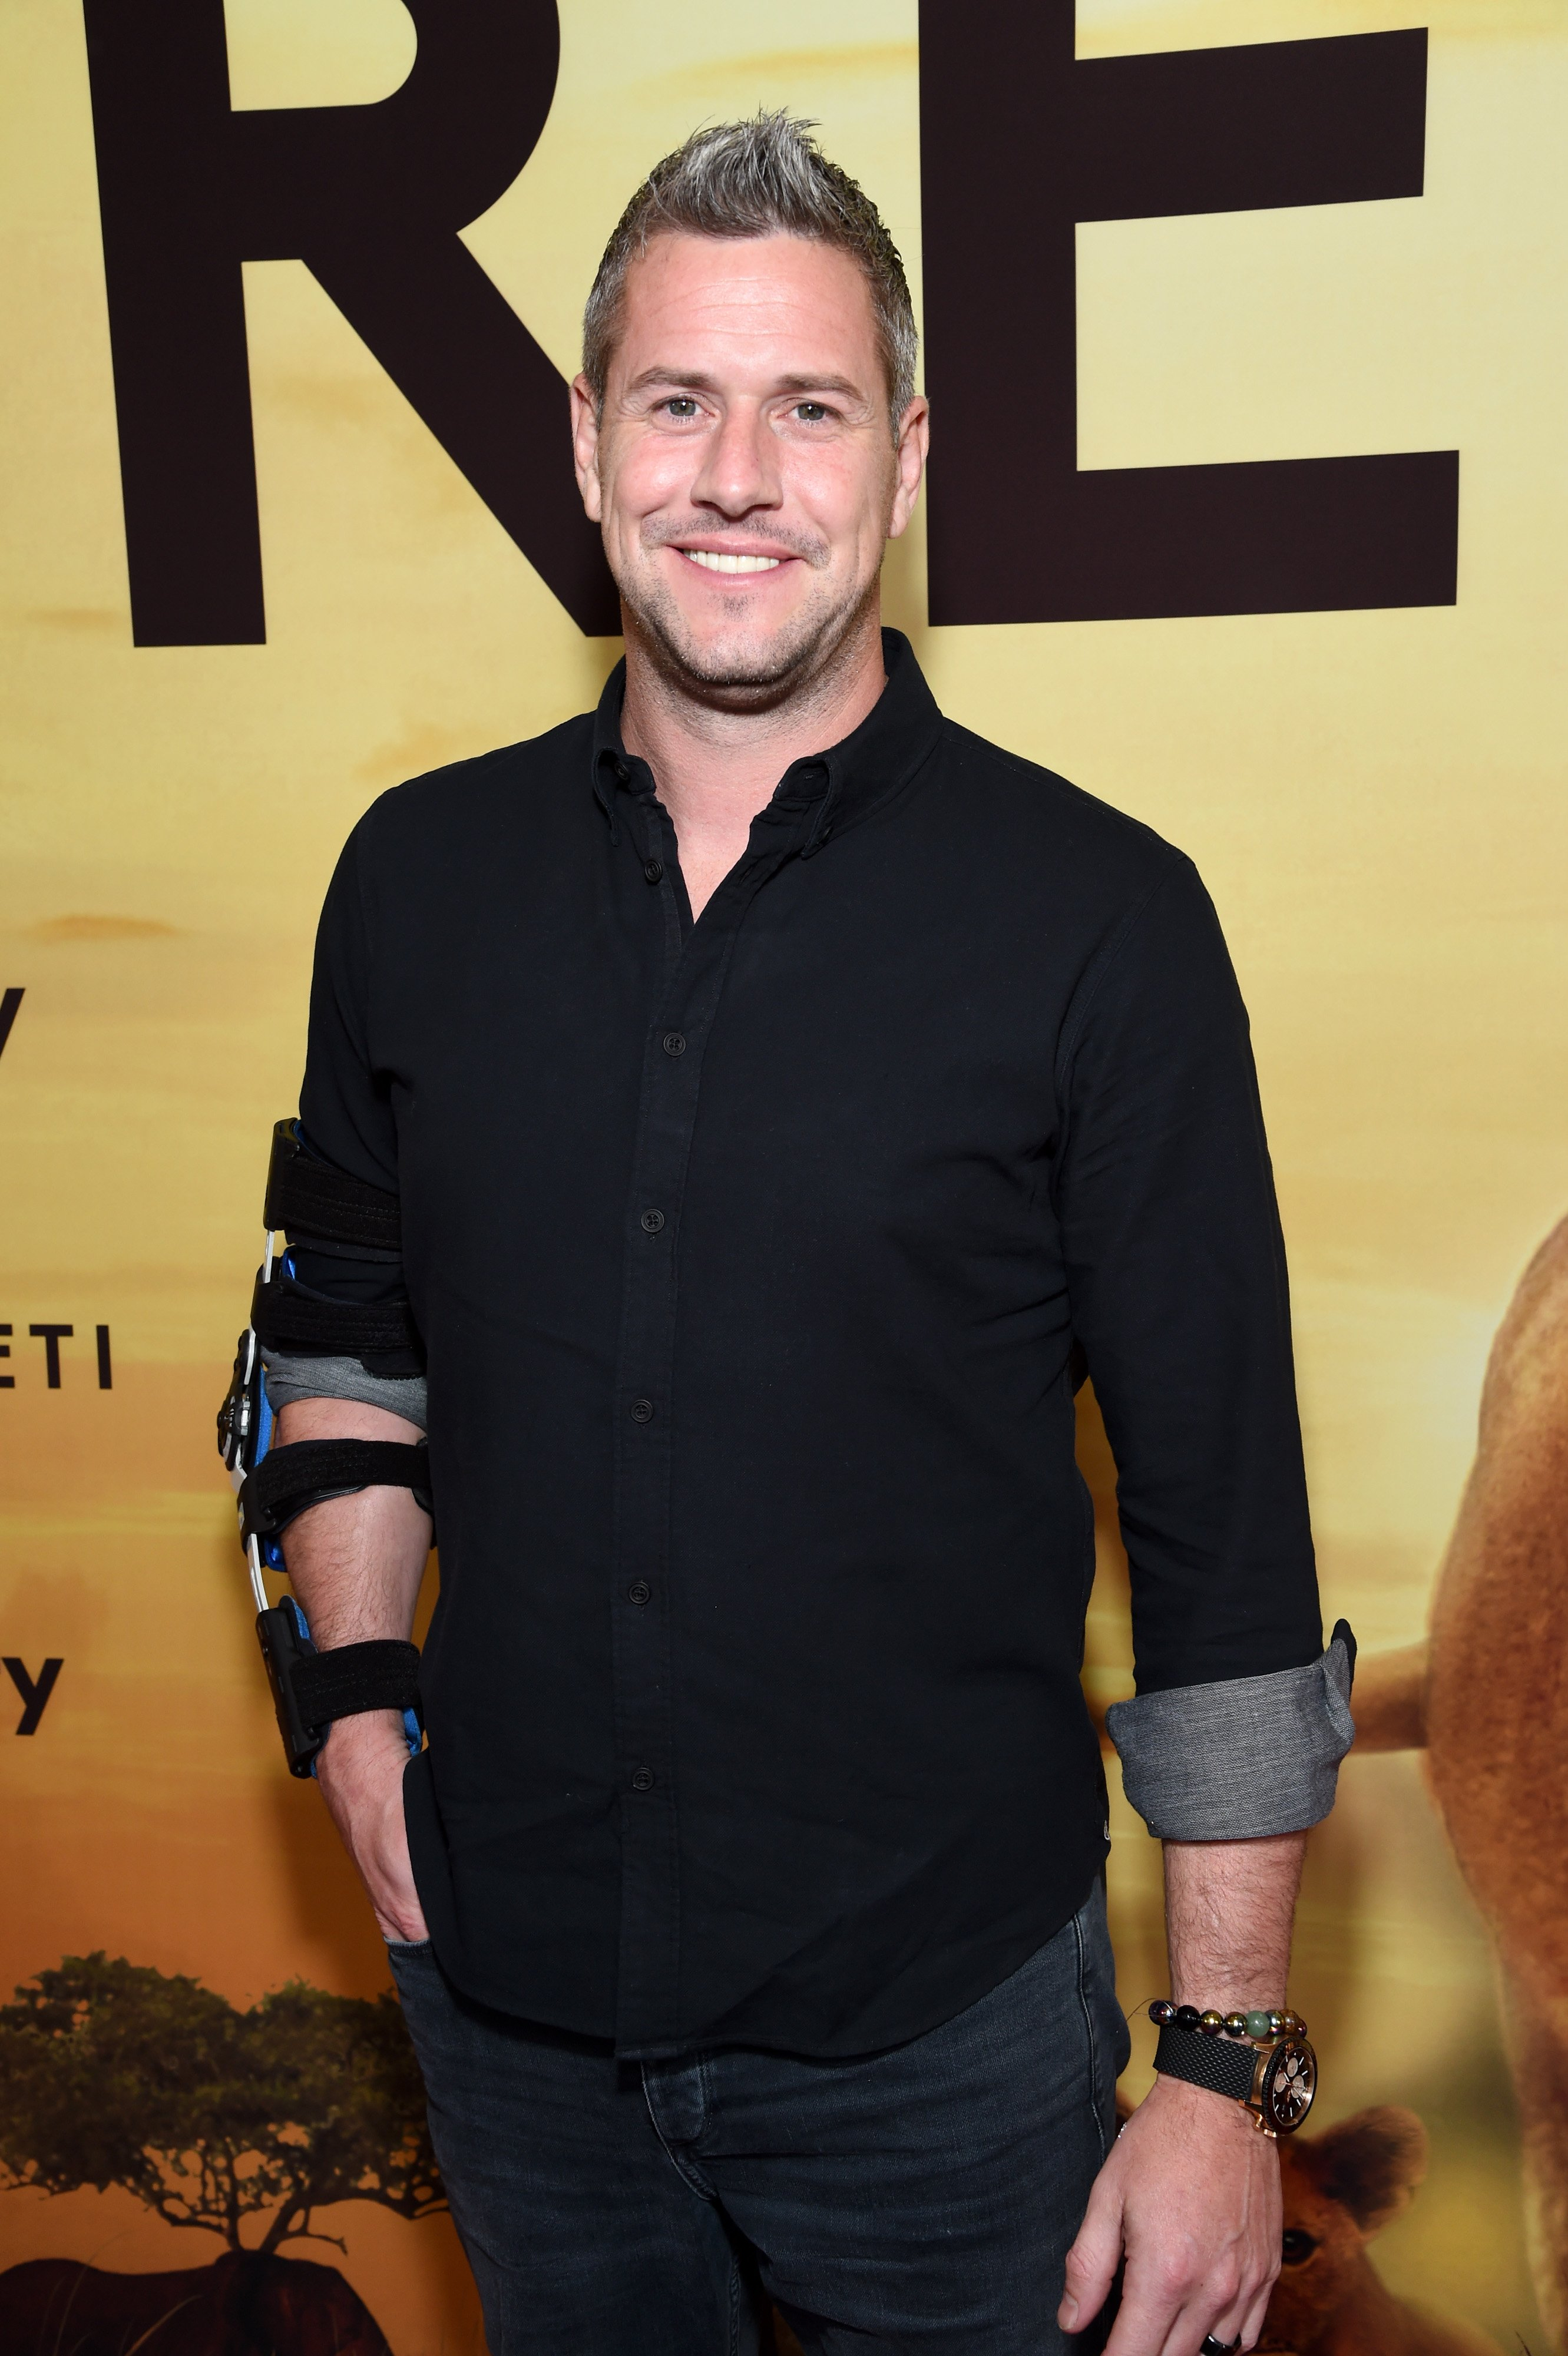 """Ant Anstead attends Discovery's """"Serengeti"""" premiere at Wallis Annenberg Center for the Performing Arts on July 23, 2019 